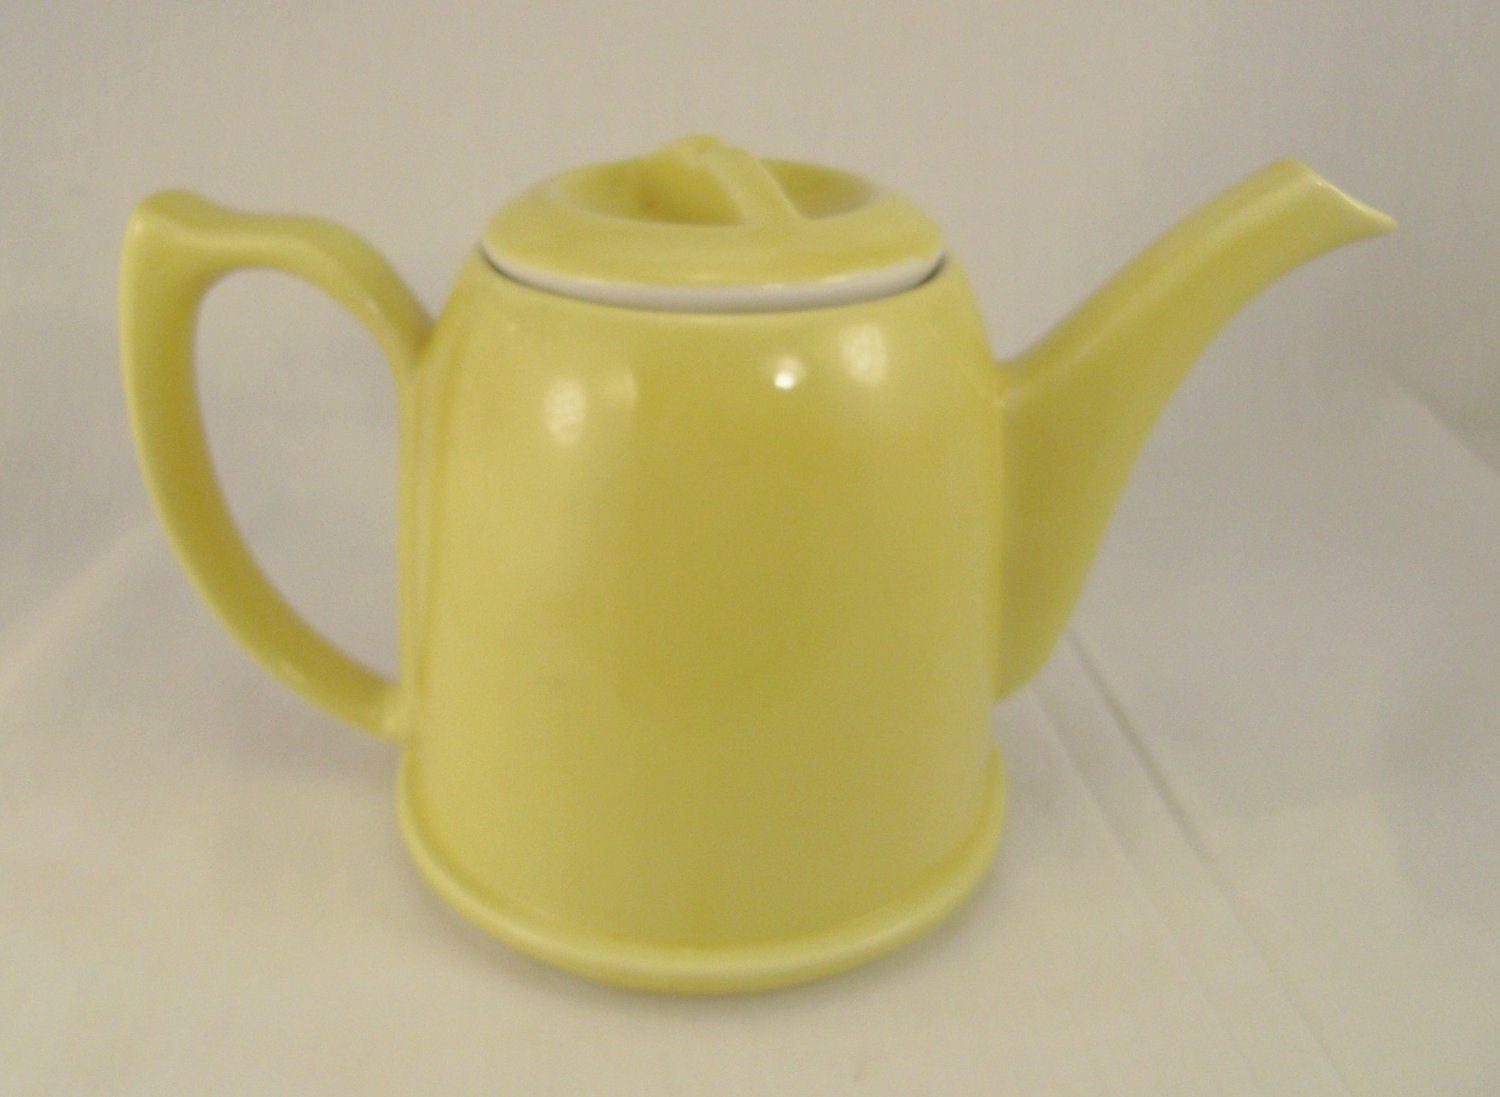 Hall Teapot Eames Era Moderne Pottery 1950s Signed Number